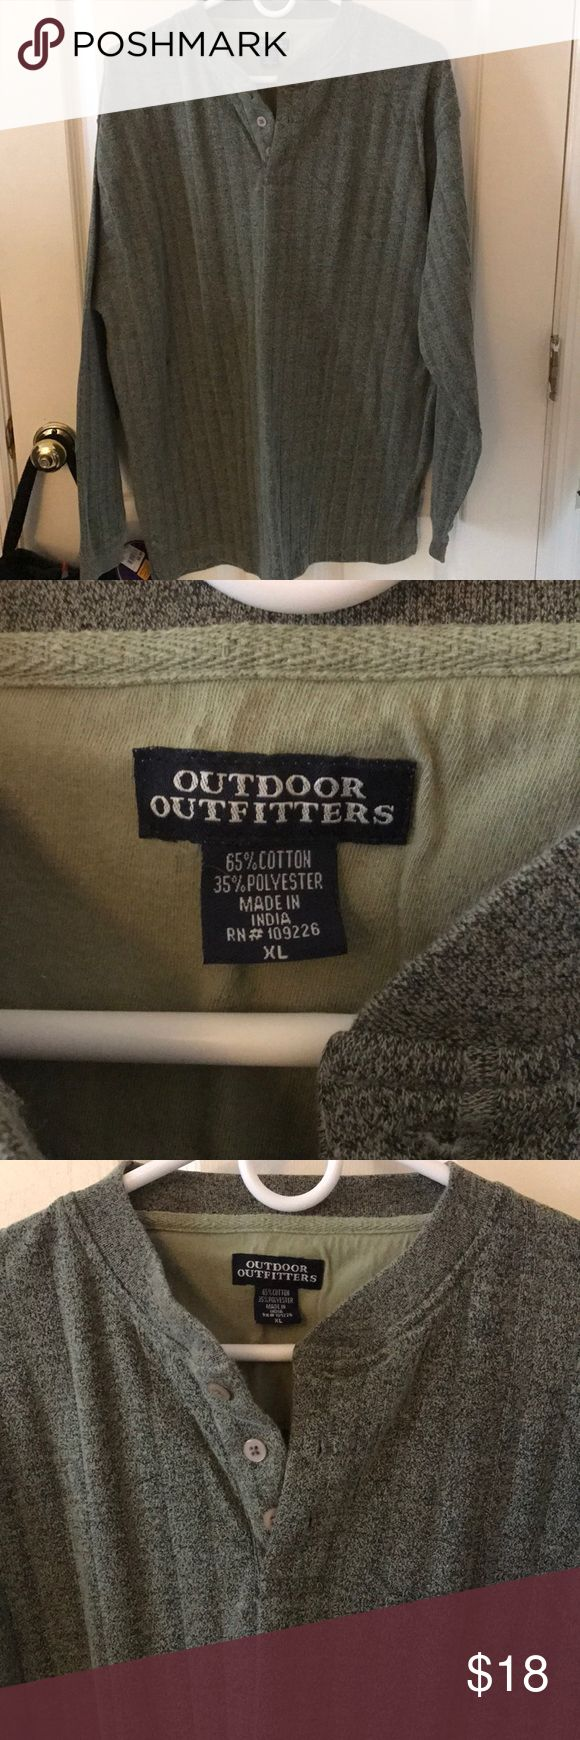 🦈🎈Men's XL shirt outdoor outfitters New without tags men's greenish XL long sleeve shirt from outdoor outfitters 65% cotton 35% polyester. Please check out my closet for more clothes, makeup and one of a kind handcrafted jewelry. Bundle and save! outdoor outfitters Shirts Casual Button Down Shirts